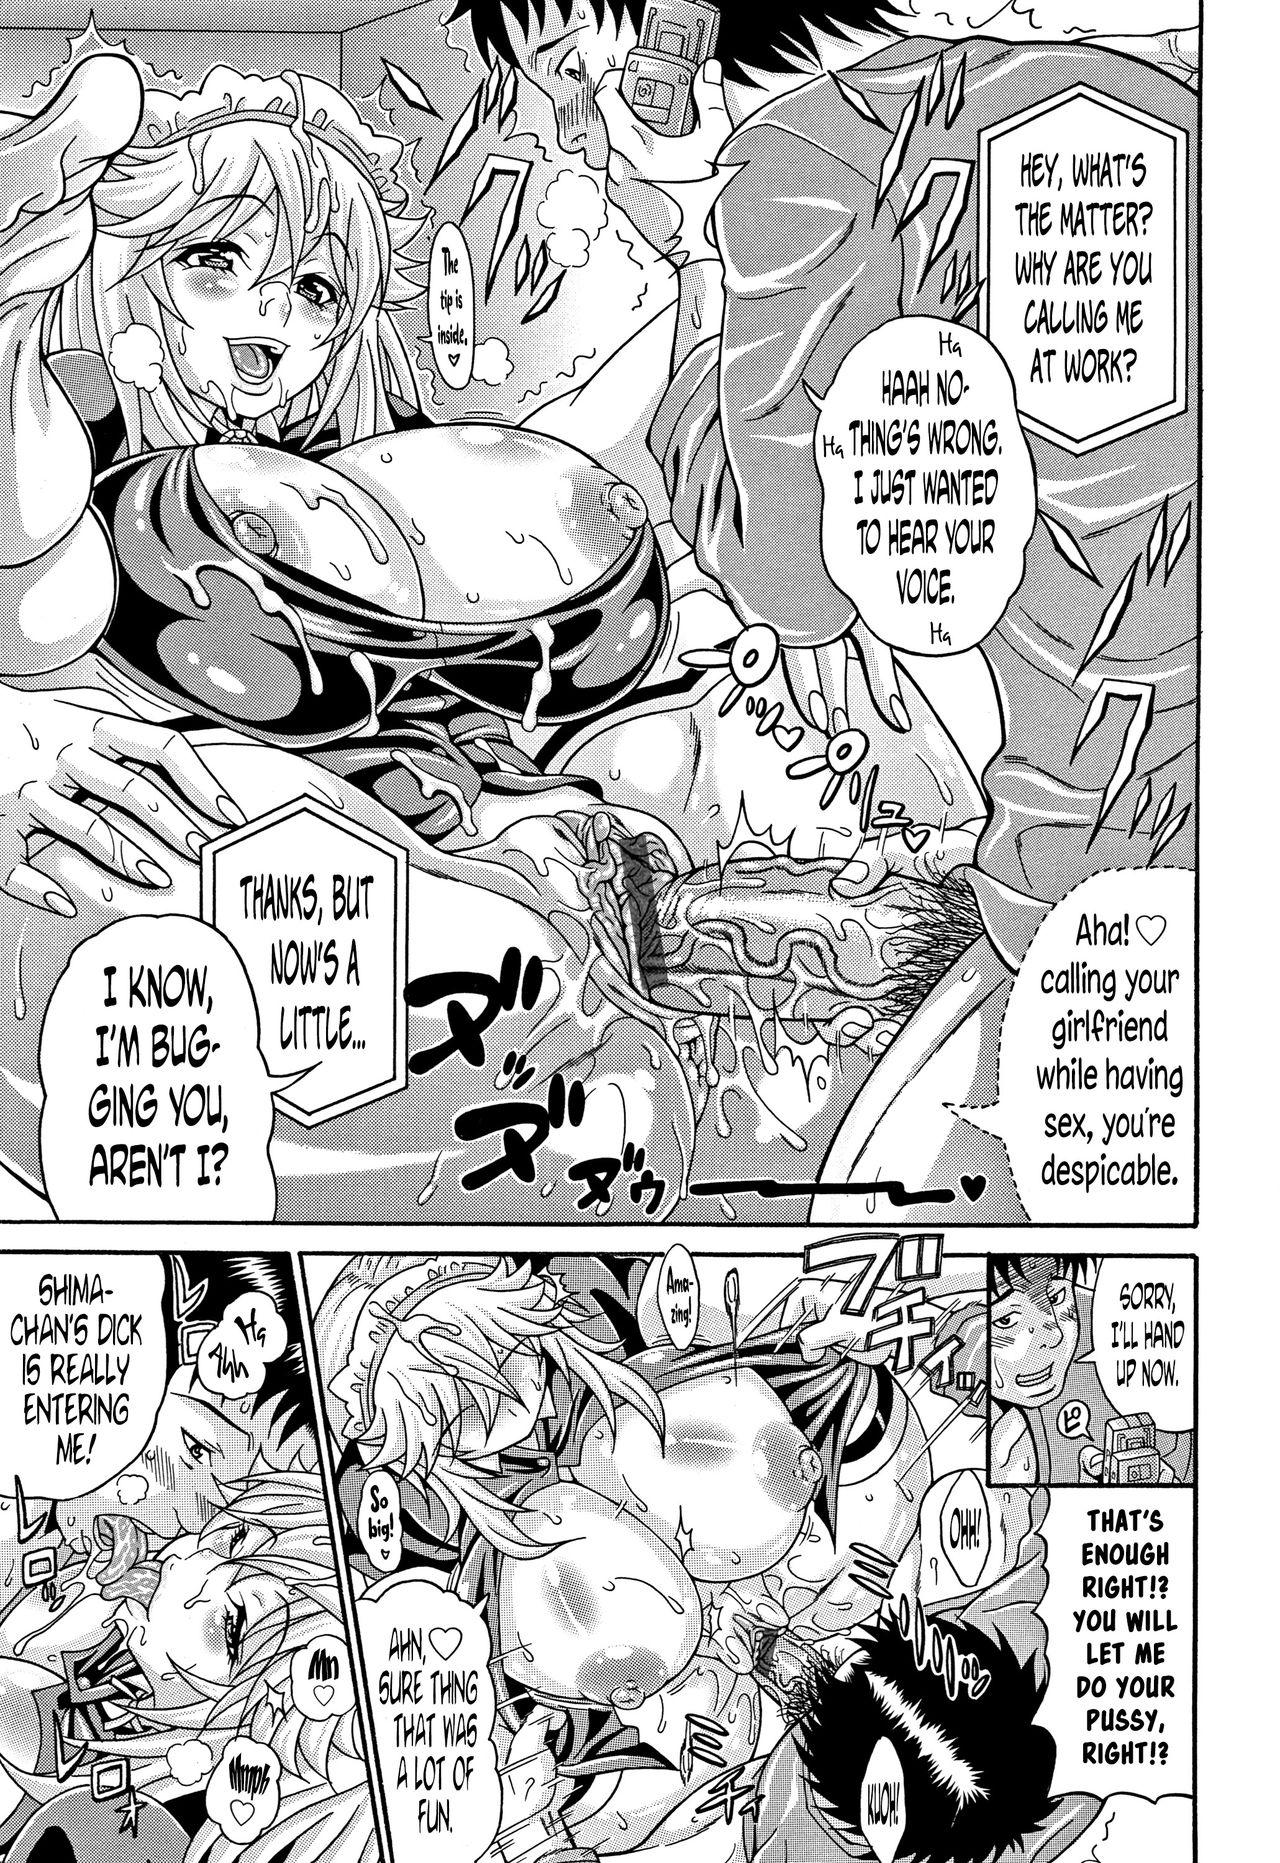 [Andou Hiroyuki] Mamire Chichi - Sticky Tits Feel Hot All Over. Ch.1-7 [English] [doujin-moe.us] 83